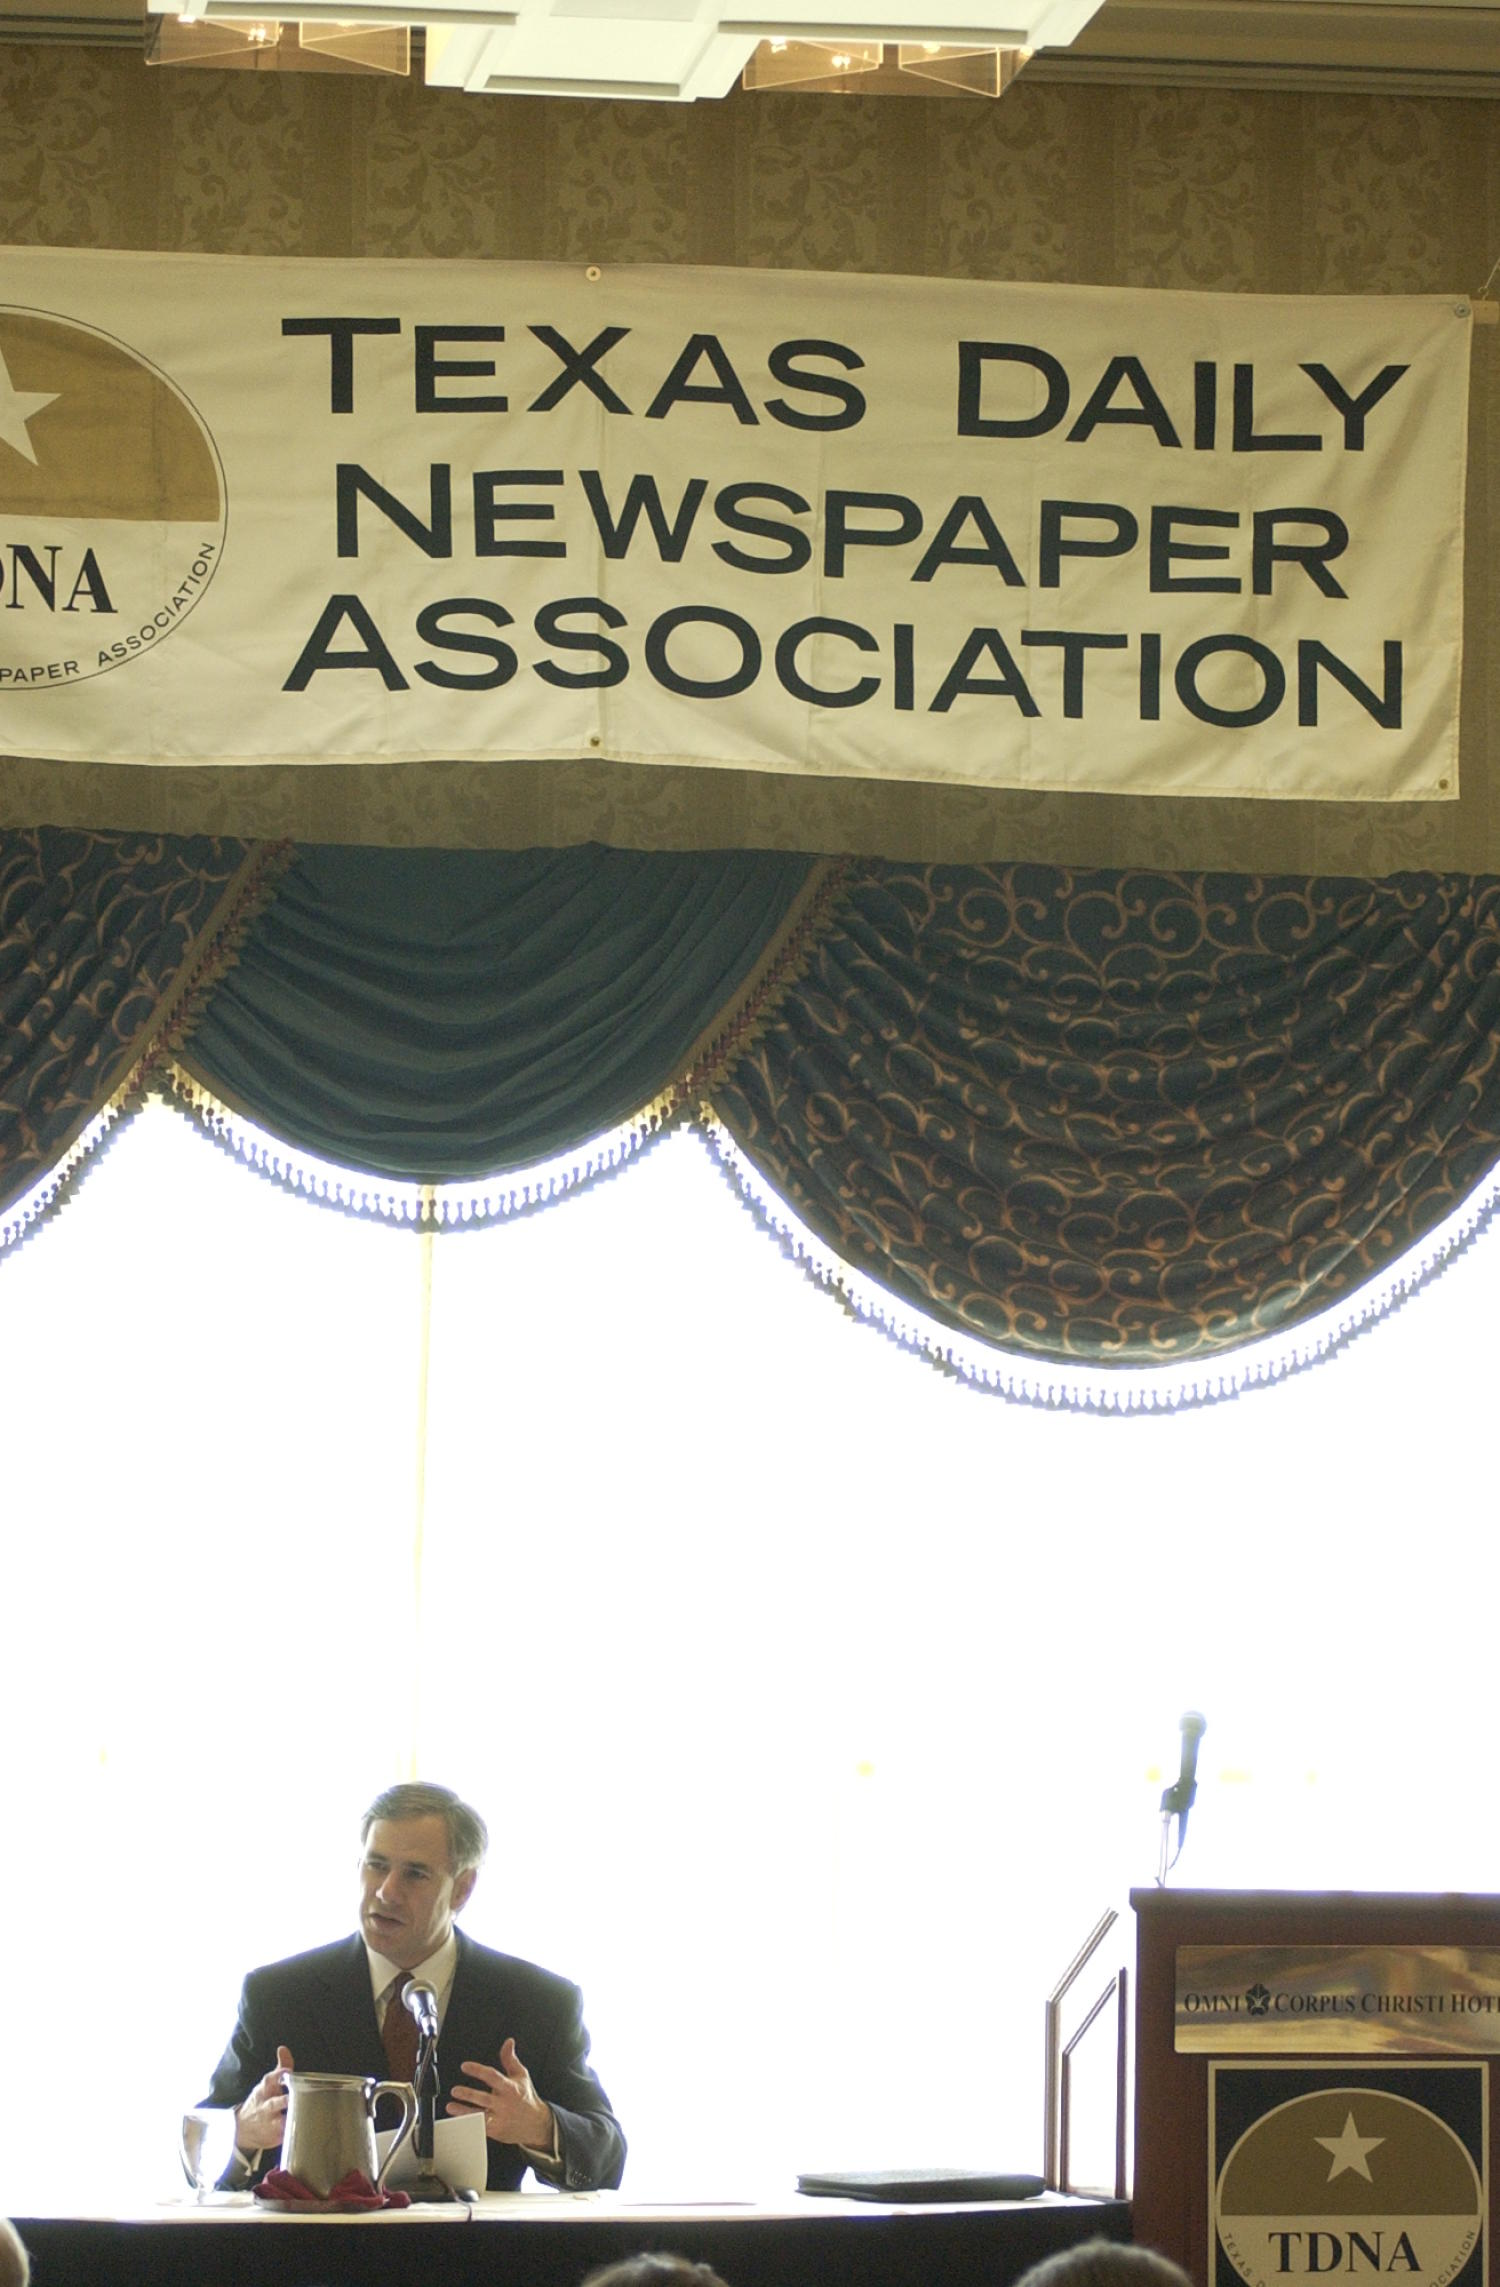 [Unidentified man attending the Texas Daily Newspaper Association conference], Photograph of an unidentified man seated in a chair and attending the 2004 Texas Daily News Association annual conference held in Corpus Christi. The man is seen speaking into the microphone placed in front of him and addressing the conference attendees. A large banner hangs above him that shows off the TDNA emblem.,